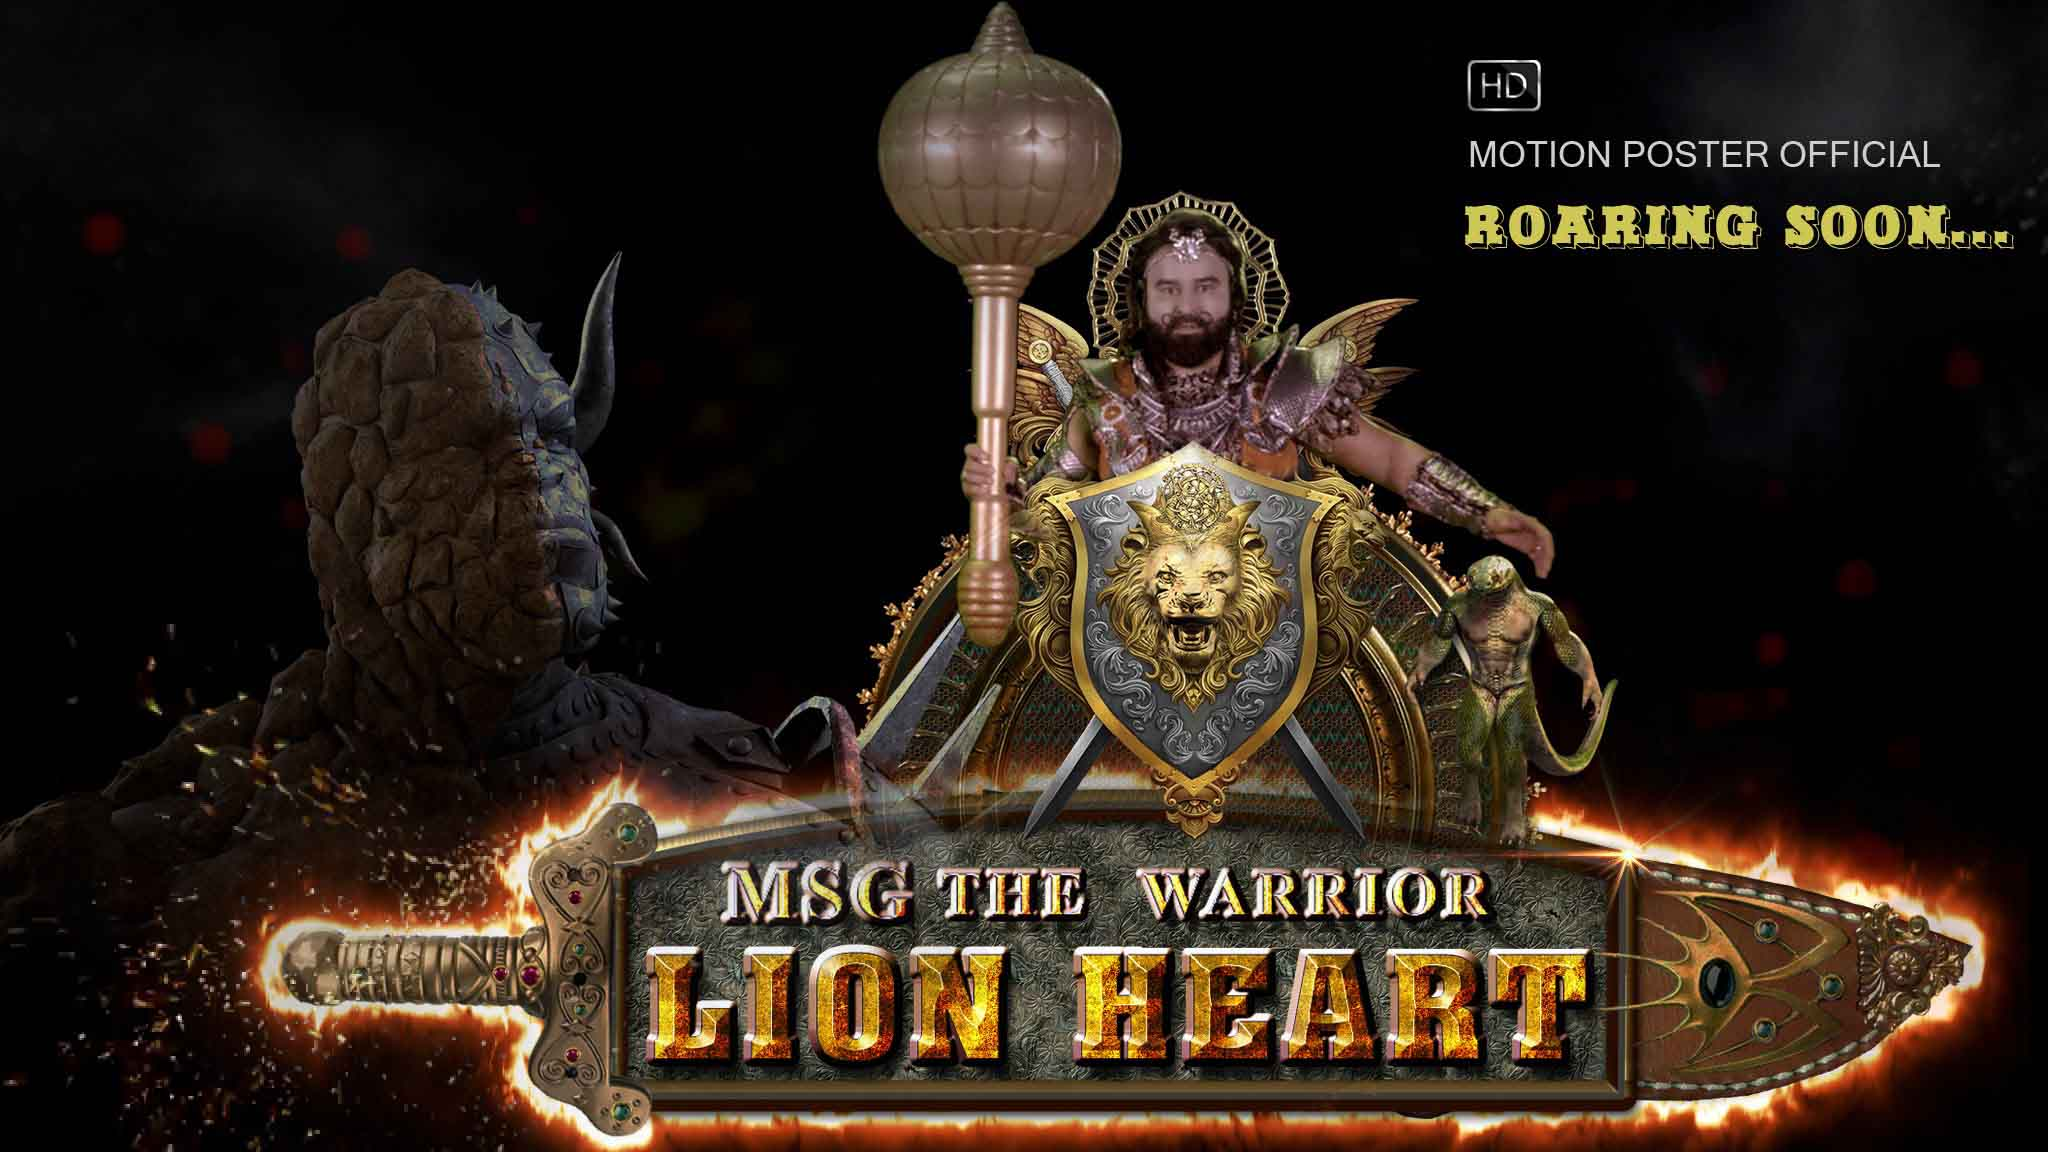 Msg the warrior lion heart movie wallpapers